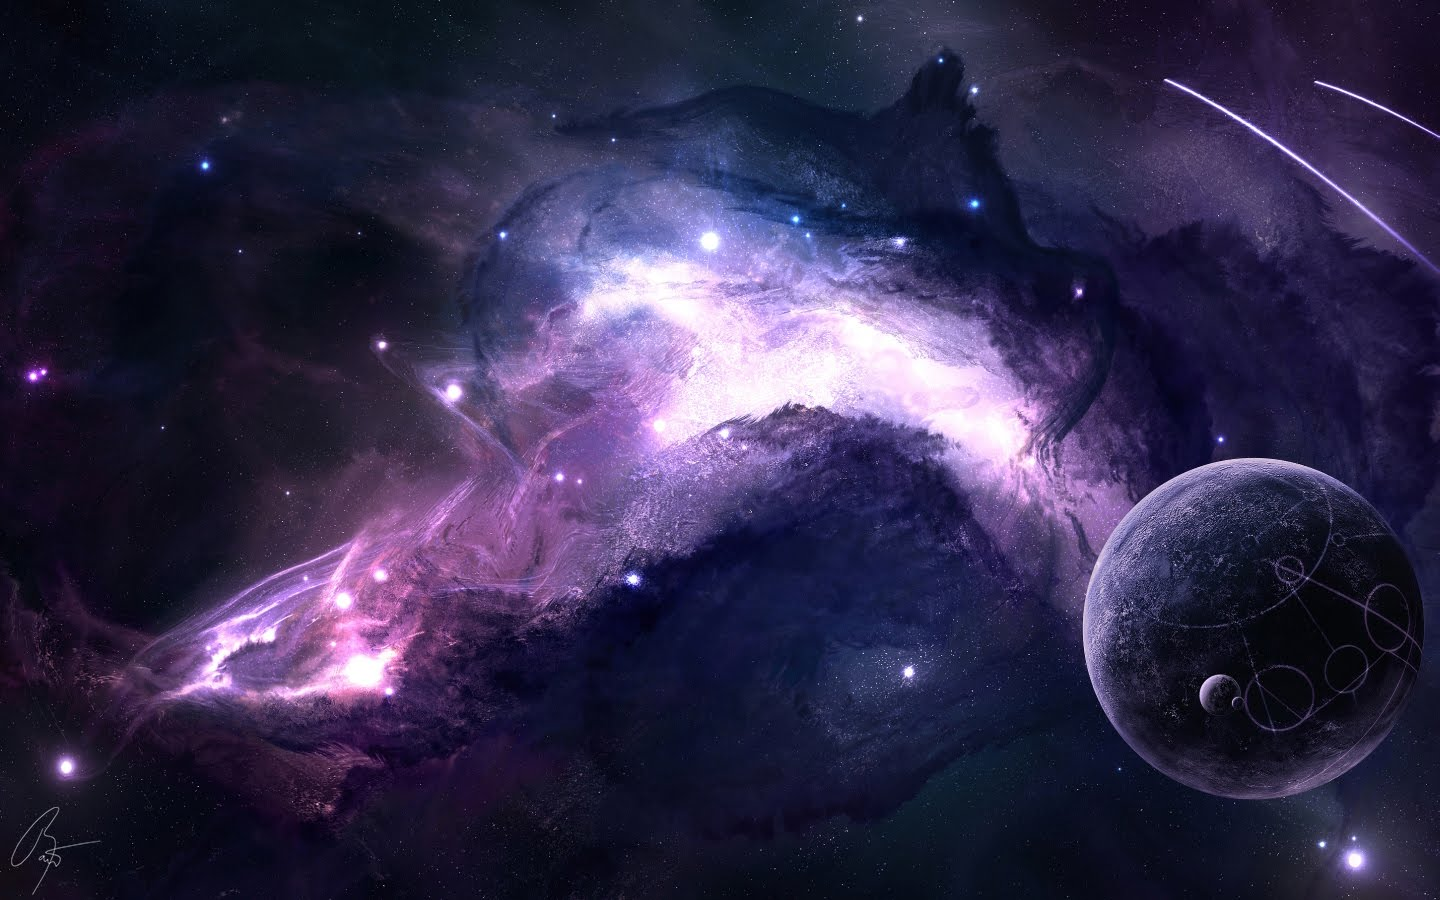 Space Wallpaper Download Free Free Grunge D Space Wallpapers HD Download